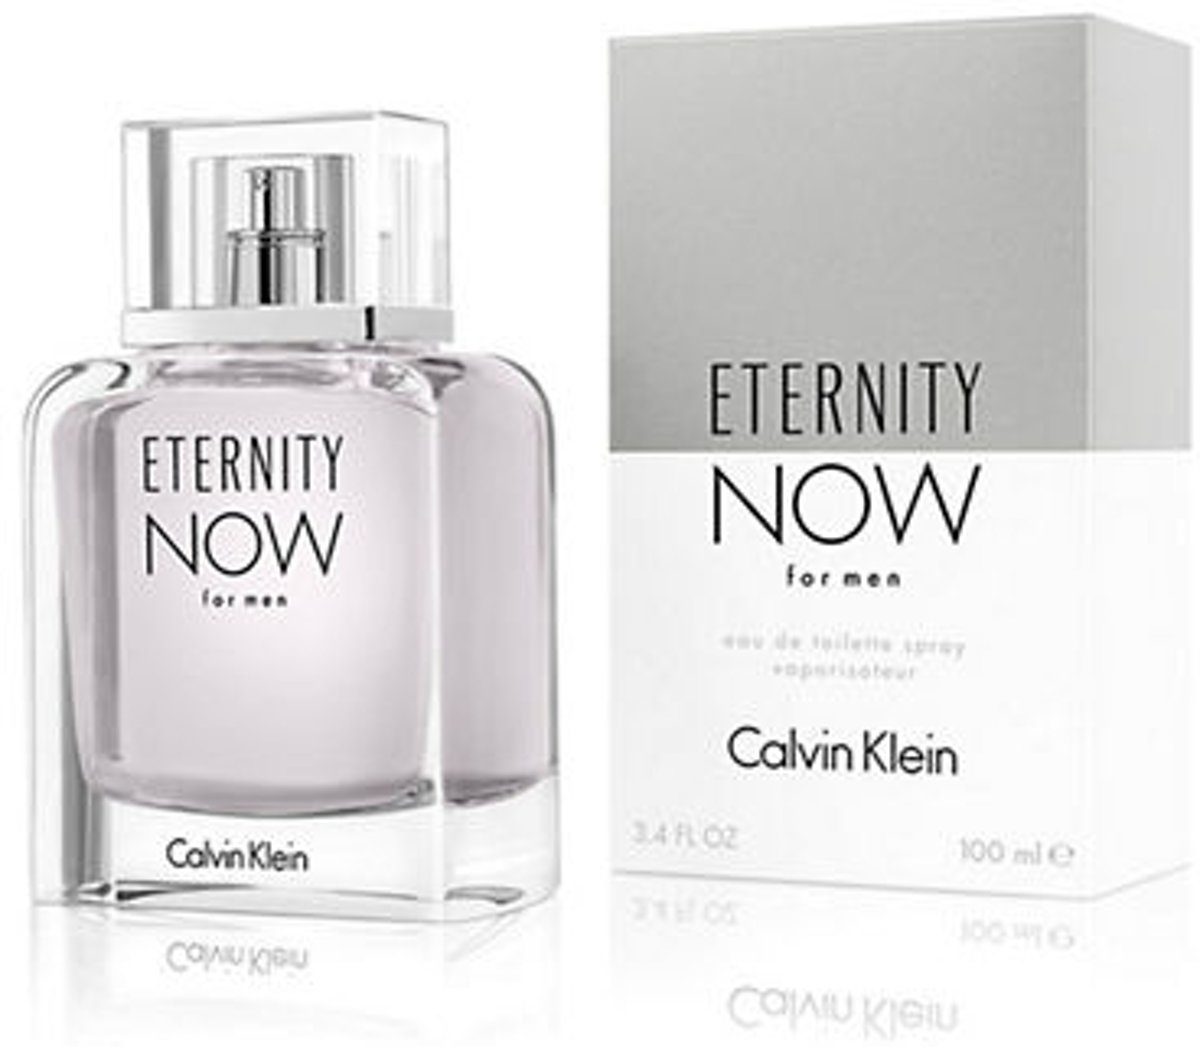 Calvin Klein Eternity Now Men Edt Spray 50 ml